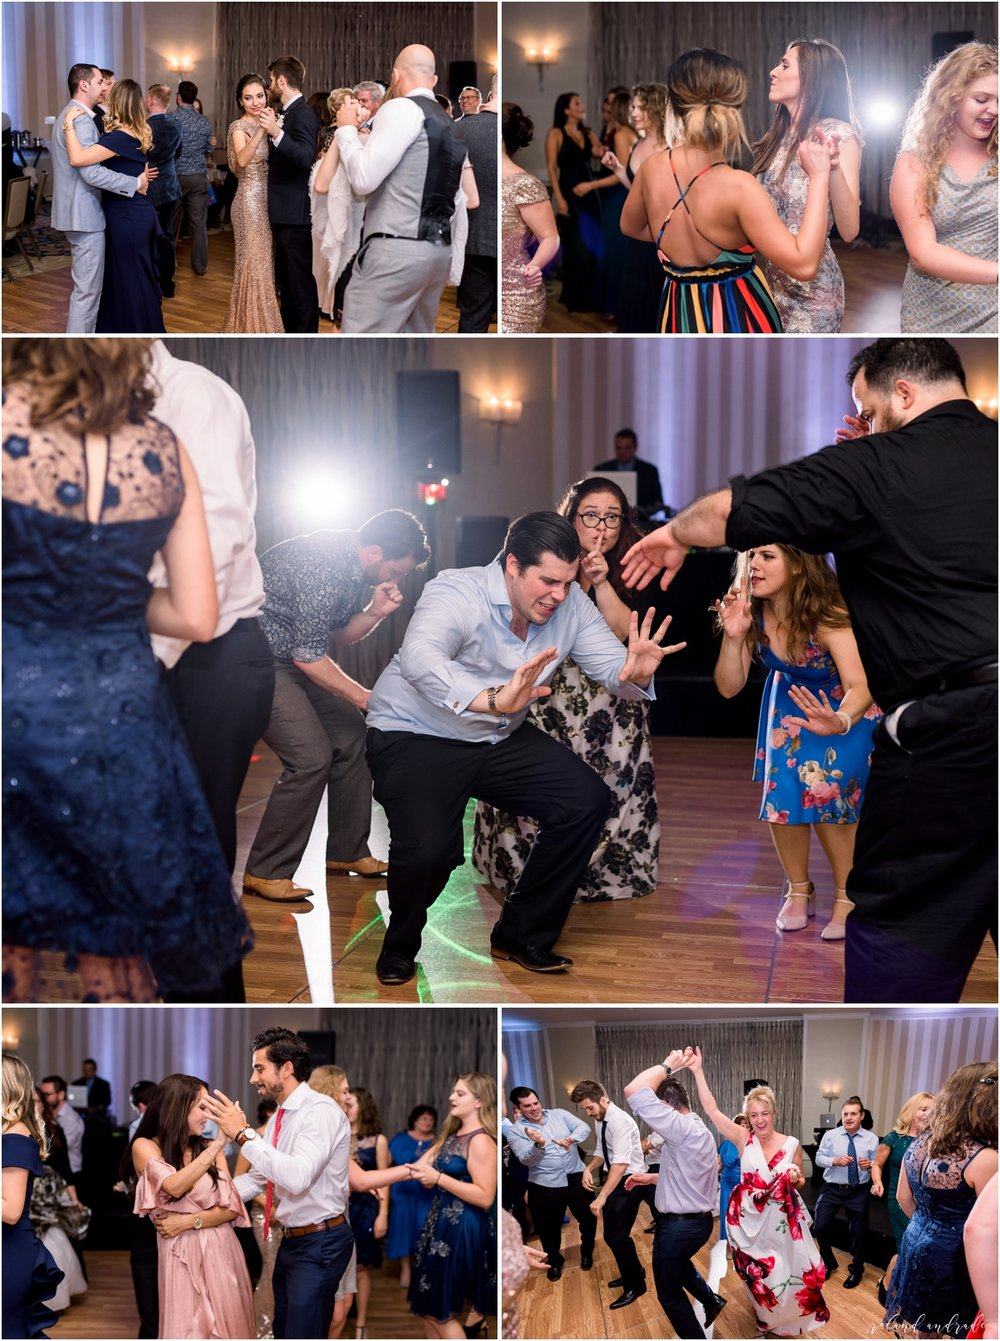 The Orrington Hotel Wedding, Alice Millar Chapel Wedding, Chicago Wedding Photographer, Aurora Wedding Photographer, Best Photographer In Aurora, Best Photographer In Chicago_0125.jpg